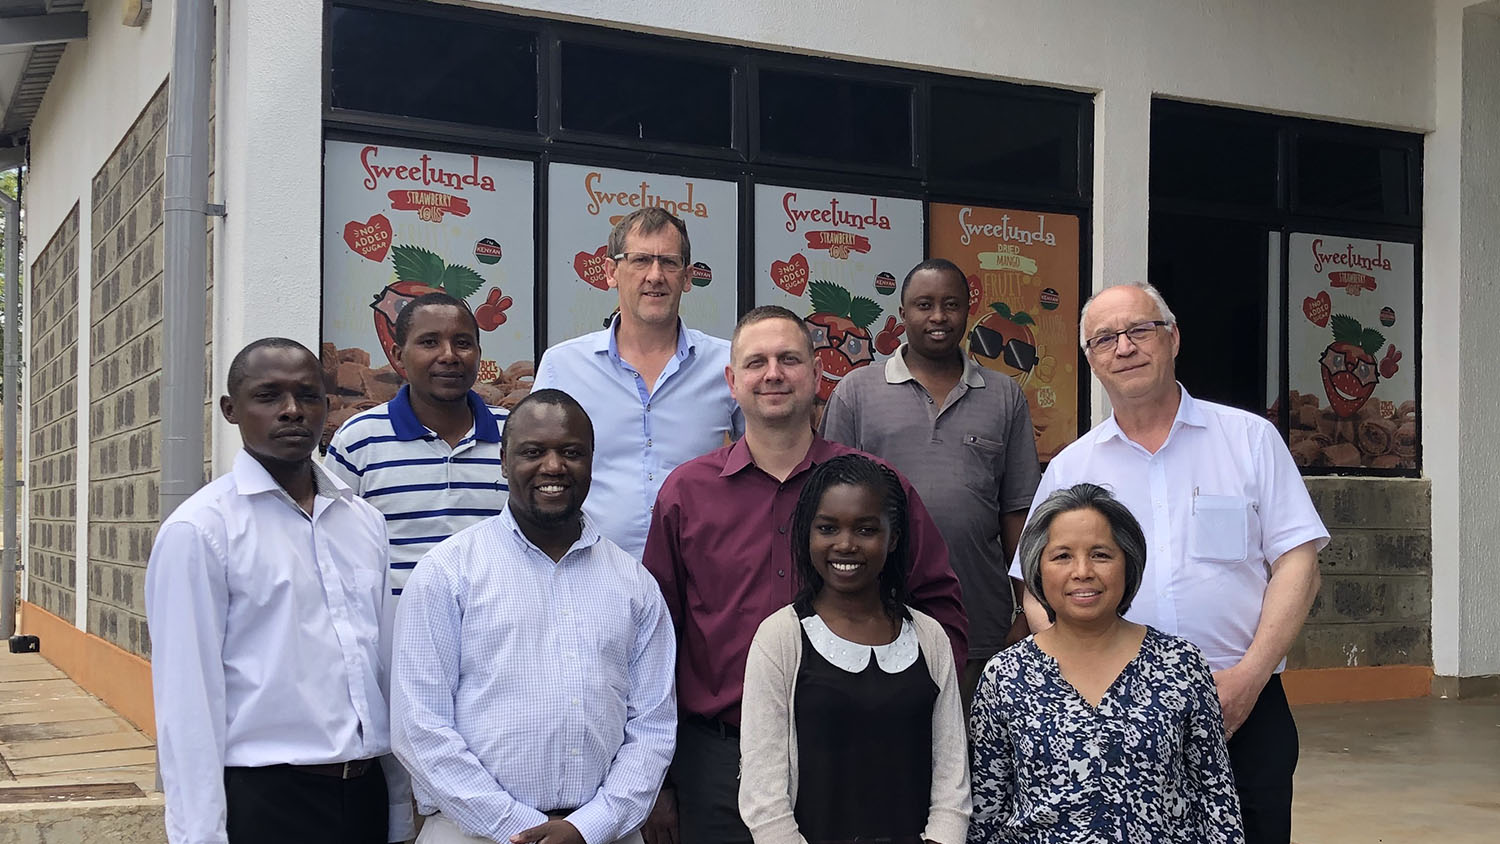 A group photo of nine individuals, African and Caucasian in front of a store front in Kenya.